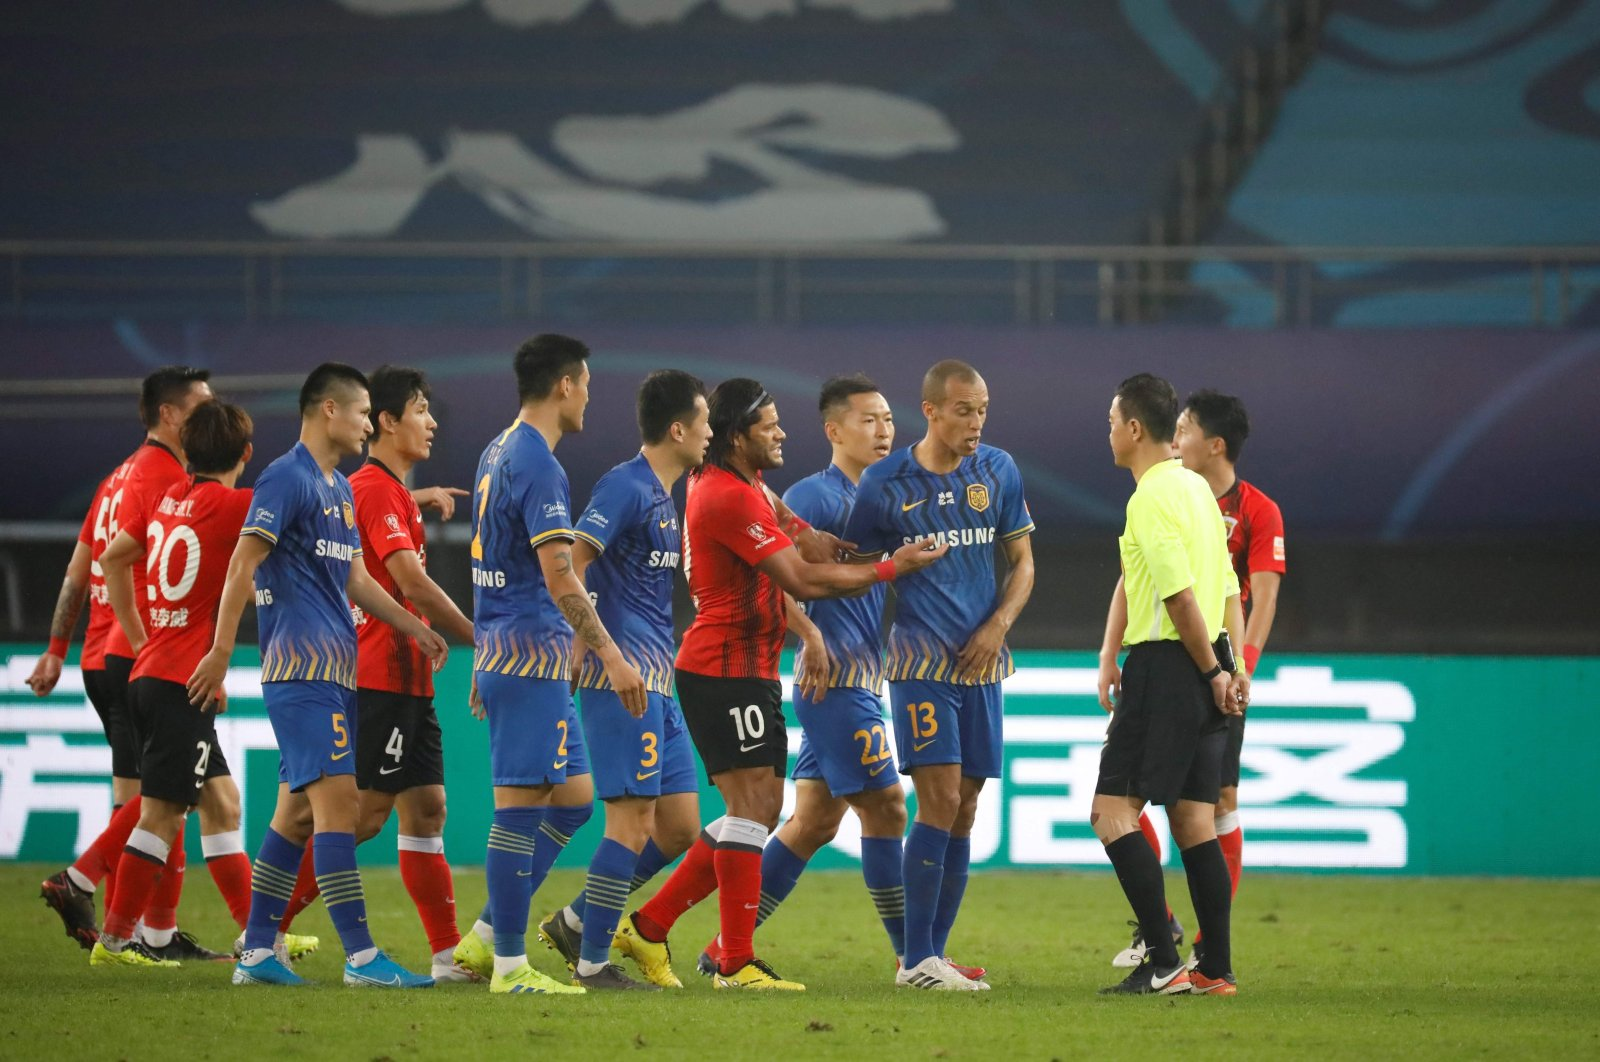 Players of Shanghai SIPG and Jiangsu Suning argue with the referee during a match in Suzhou, China, Nov. 2, 2020. (AFP Photo)